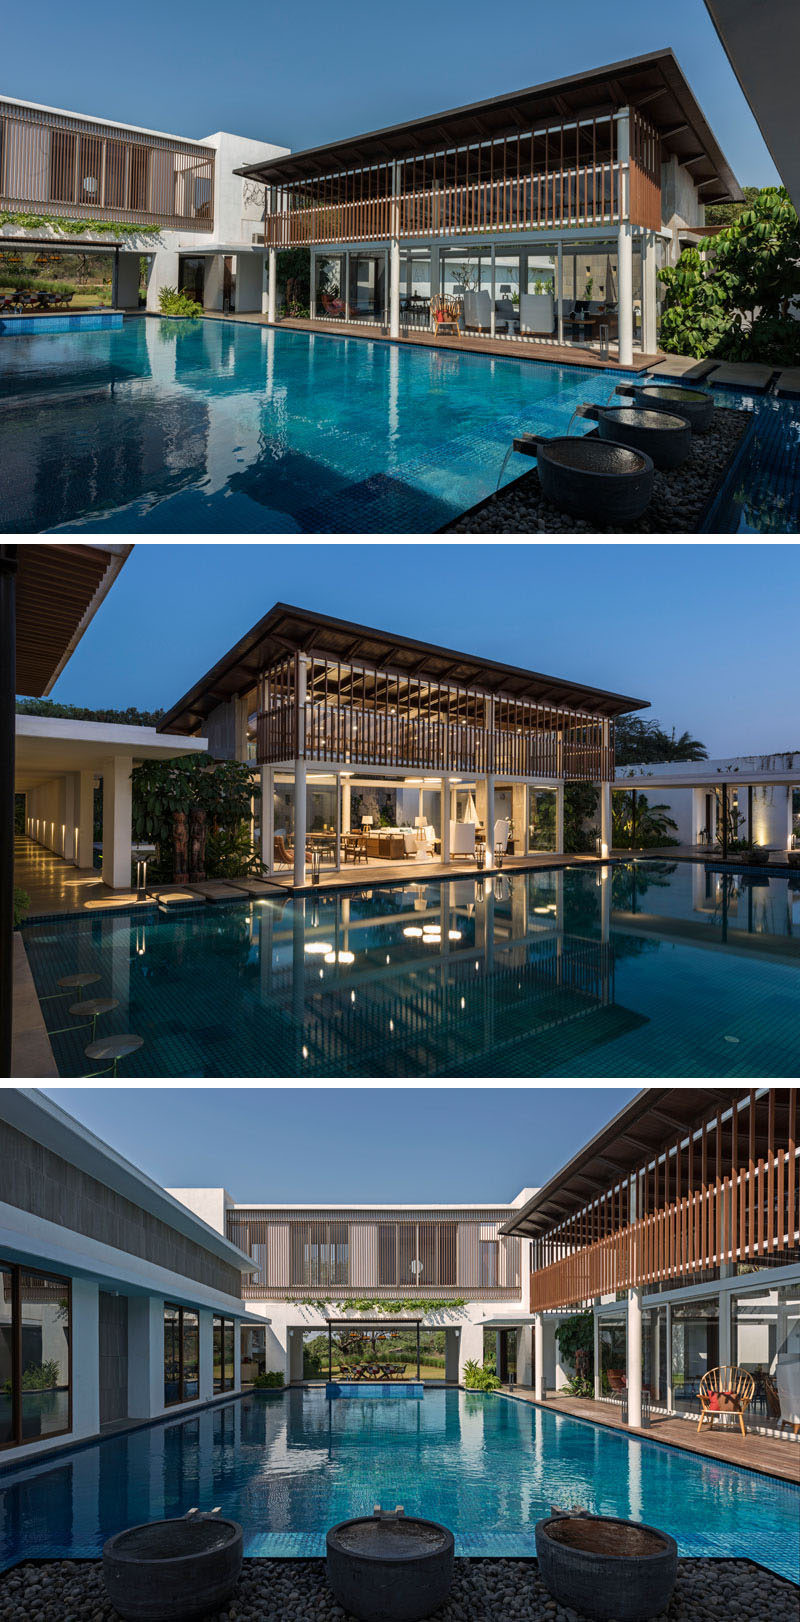 This modern house wraps around a large swimming pool.